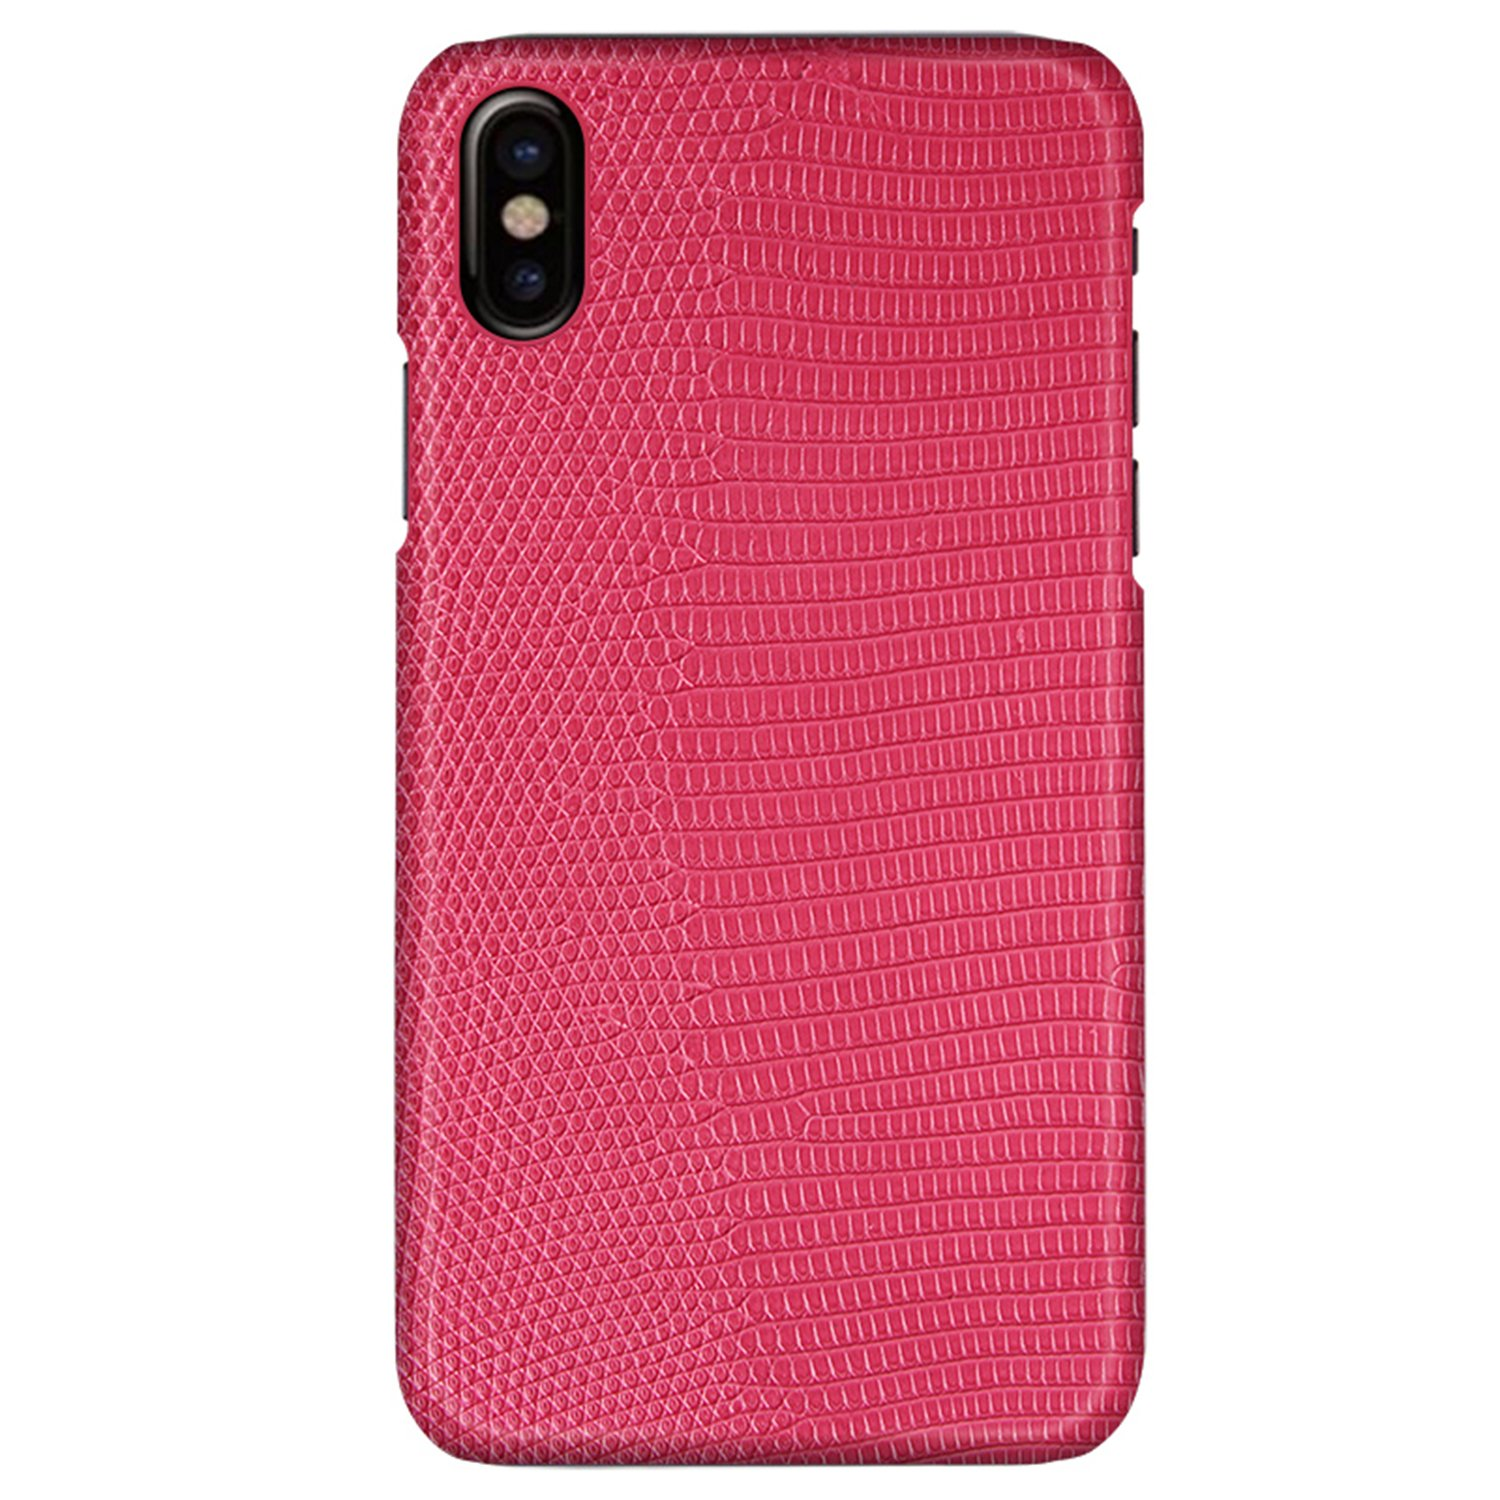 UU&T Lightweight Luxury Case Lizard Leather Premium Shockproof Hardshell Back Cover Case For IPhone X 5.8 Inch Pink